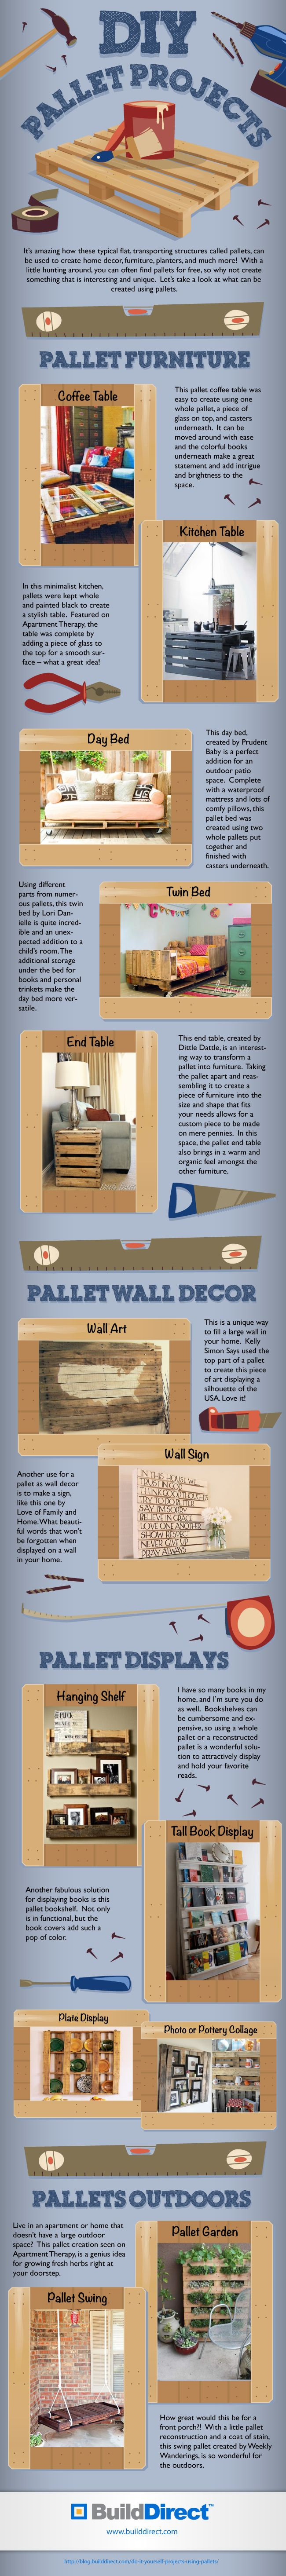 #DIY Pallet Projects - http://dunway.info/pallets/index.html